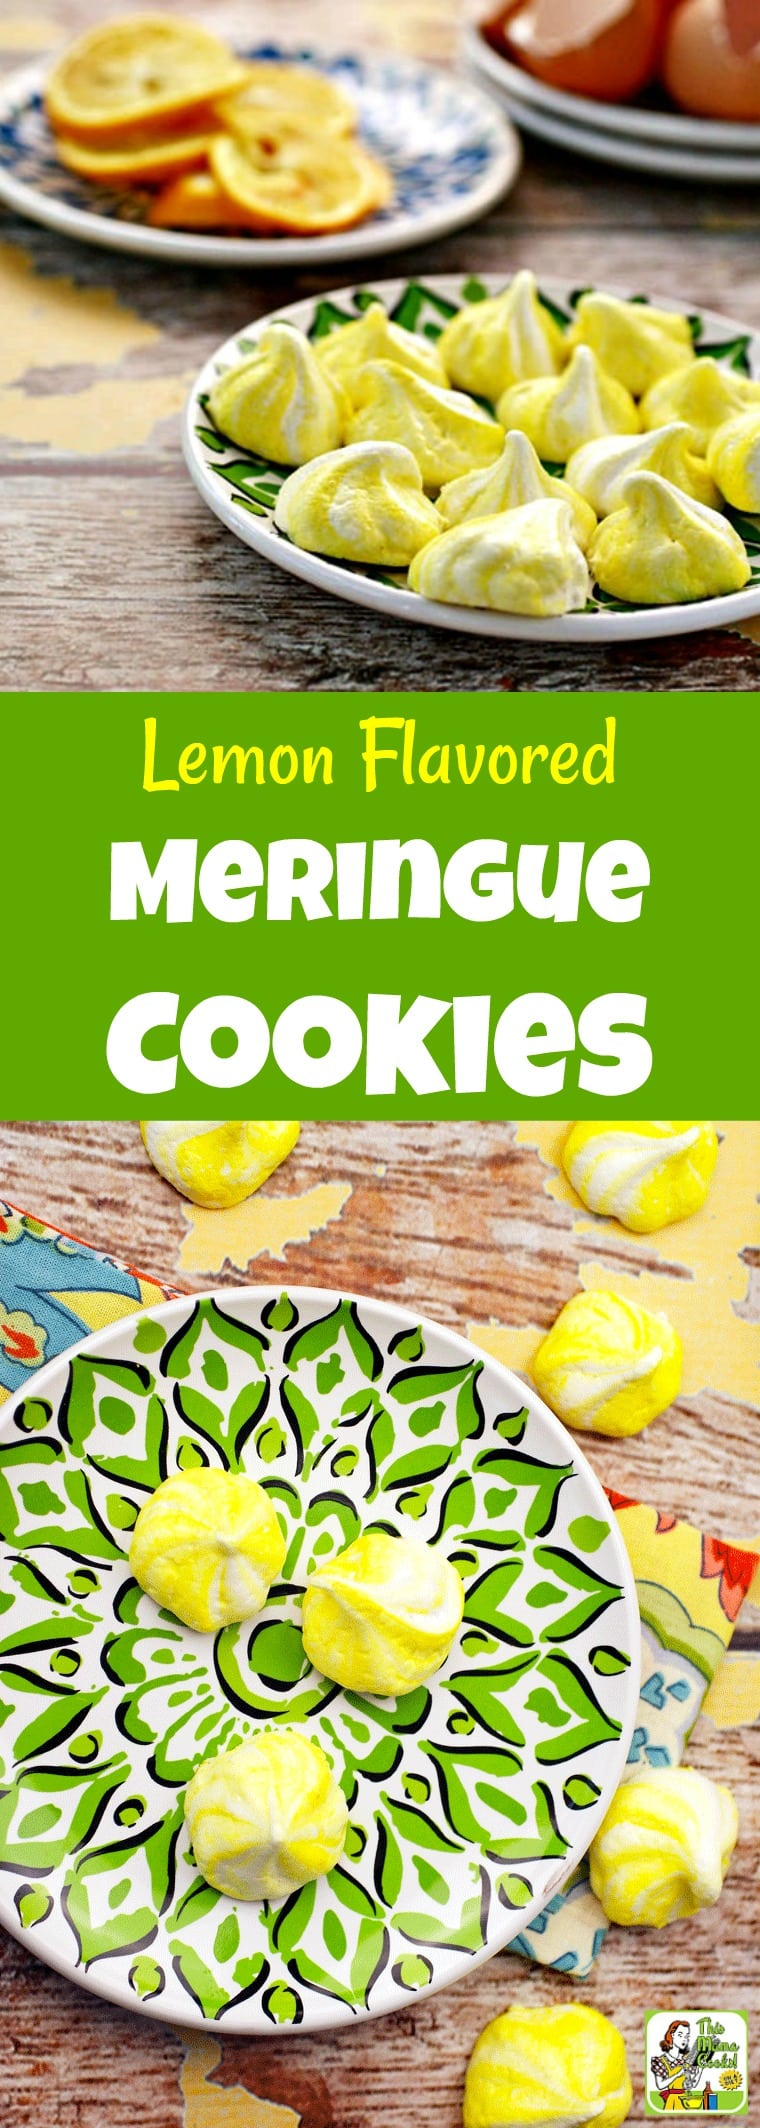 These Meringue Cookies are low in fat, gluten-free, and a guilt-free indulgence. This meringue recipe is flavored with grated Meyer lemon rind and optionally colored with paste food coloring. Omit the lemon to make vanilla meringue cookies instead. #recipes #easy #recipeoftheday #healthyrecipes #glutenfree #easyrecipes #baking #cookies #cookierecipes #snacks #lowcaloriesnacks #desserts #dessertrecipes #dessertideas #lowfat #meringues #meringuecookies